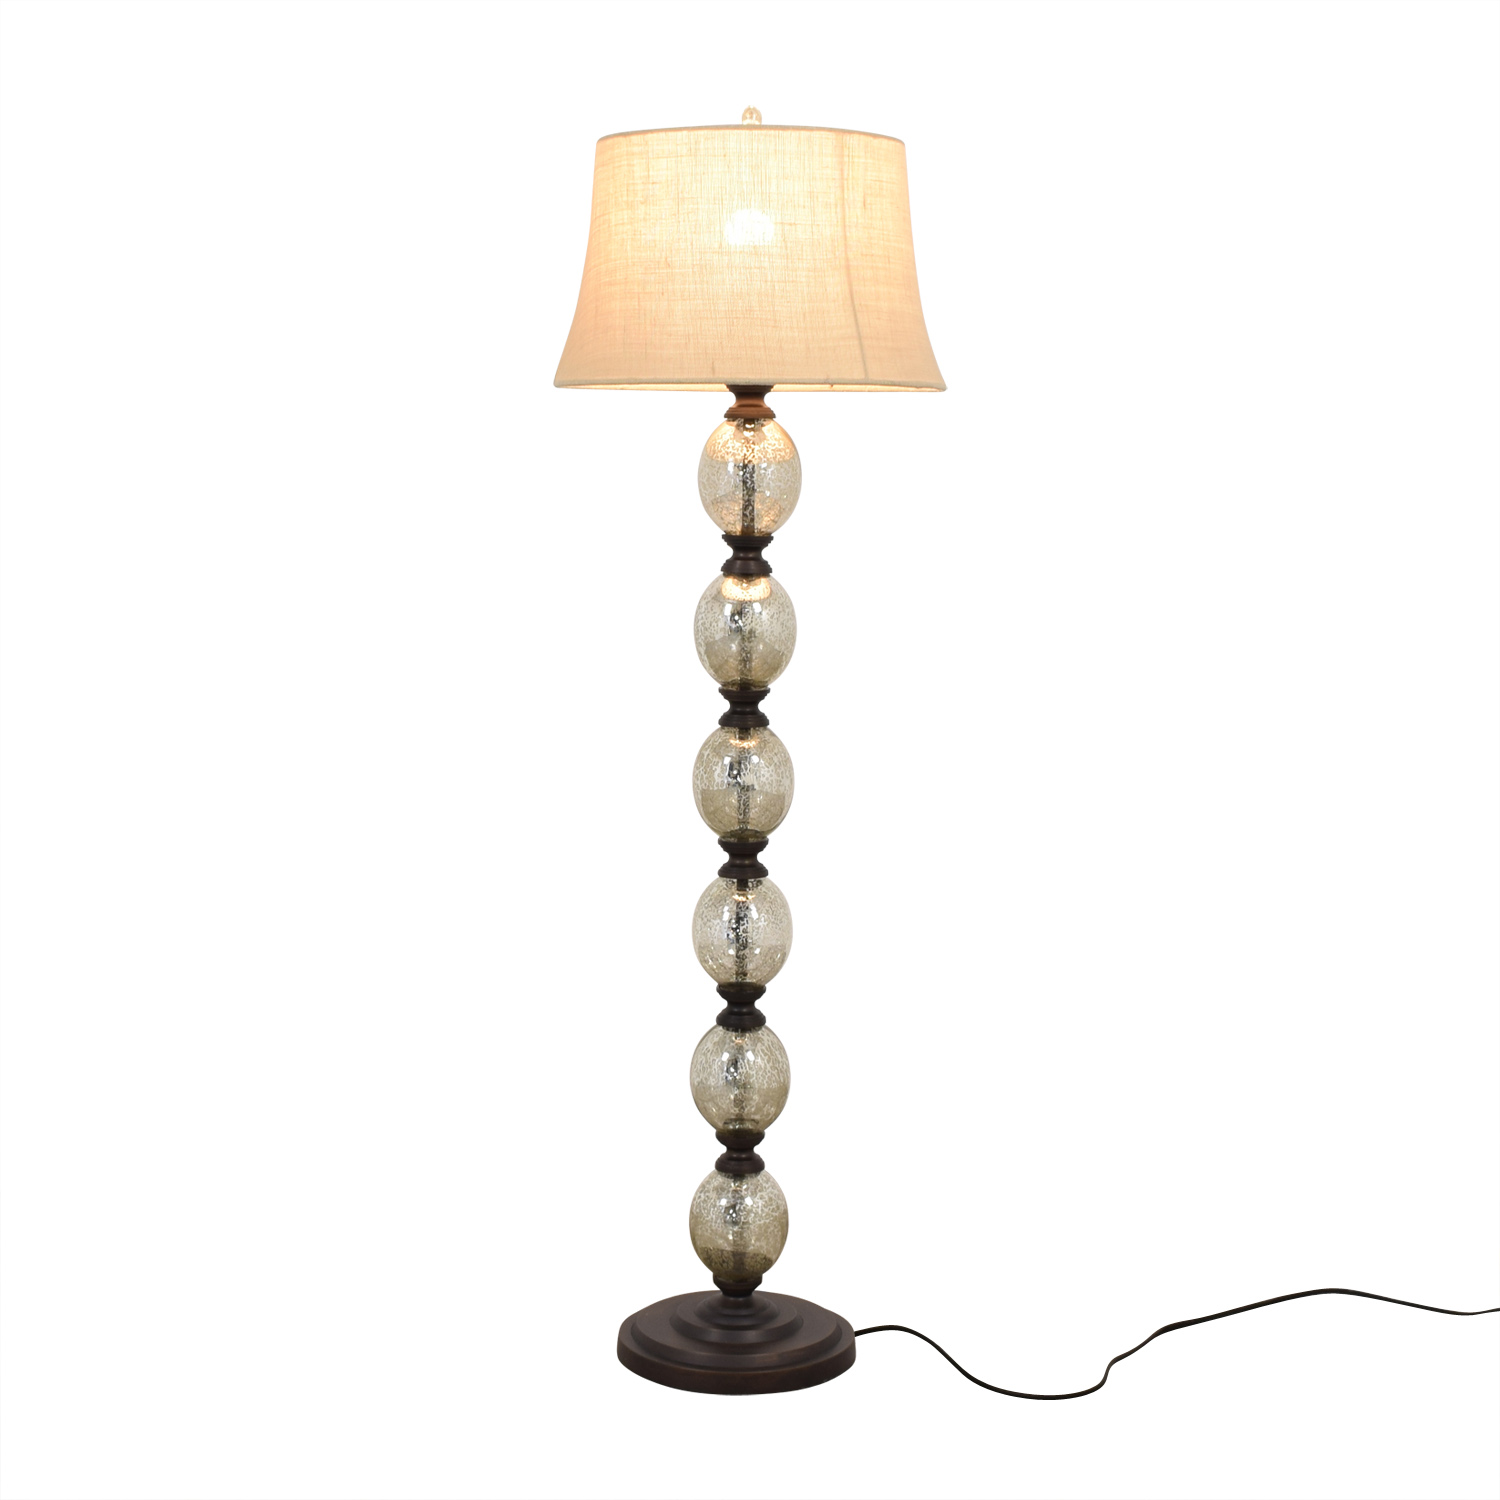 Pottery Barn Pottery Barn Stacked Mercury Glass Floor Lamp price